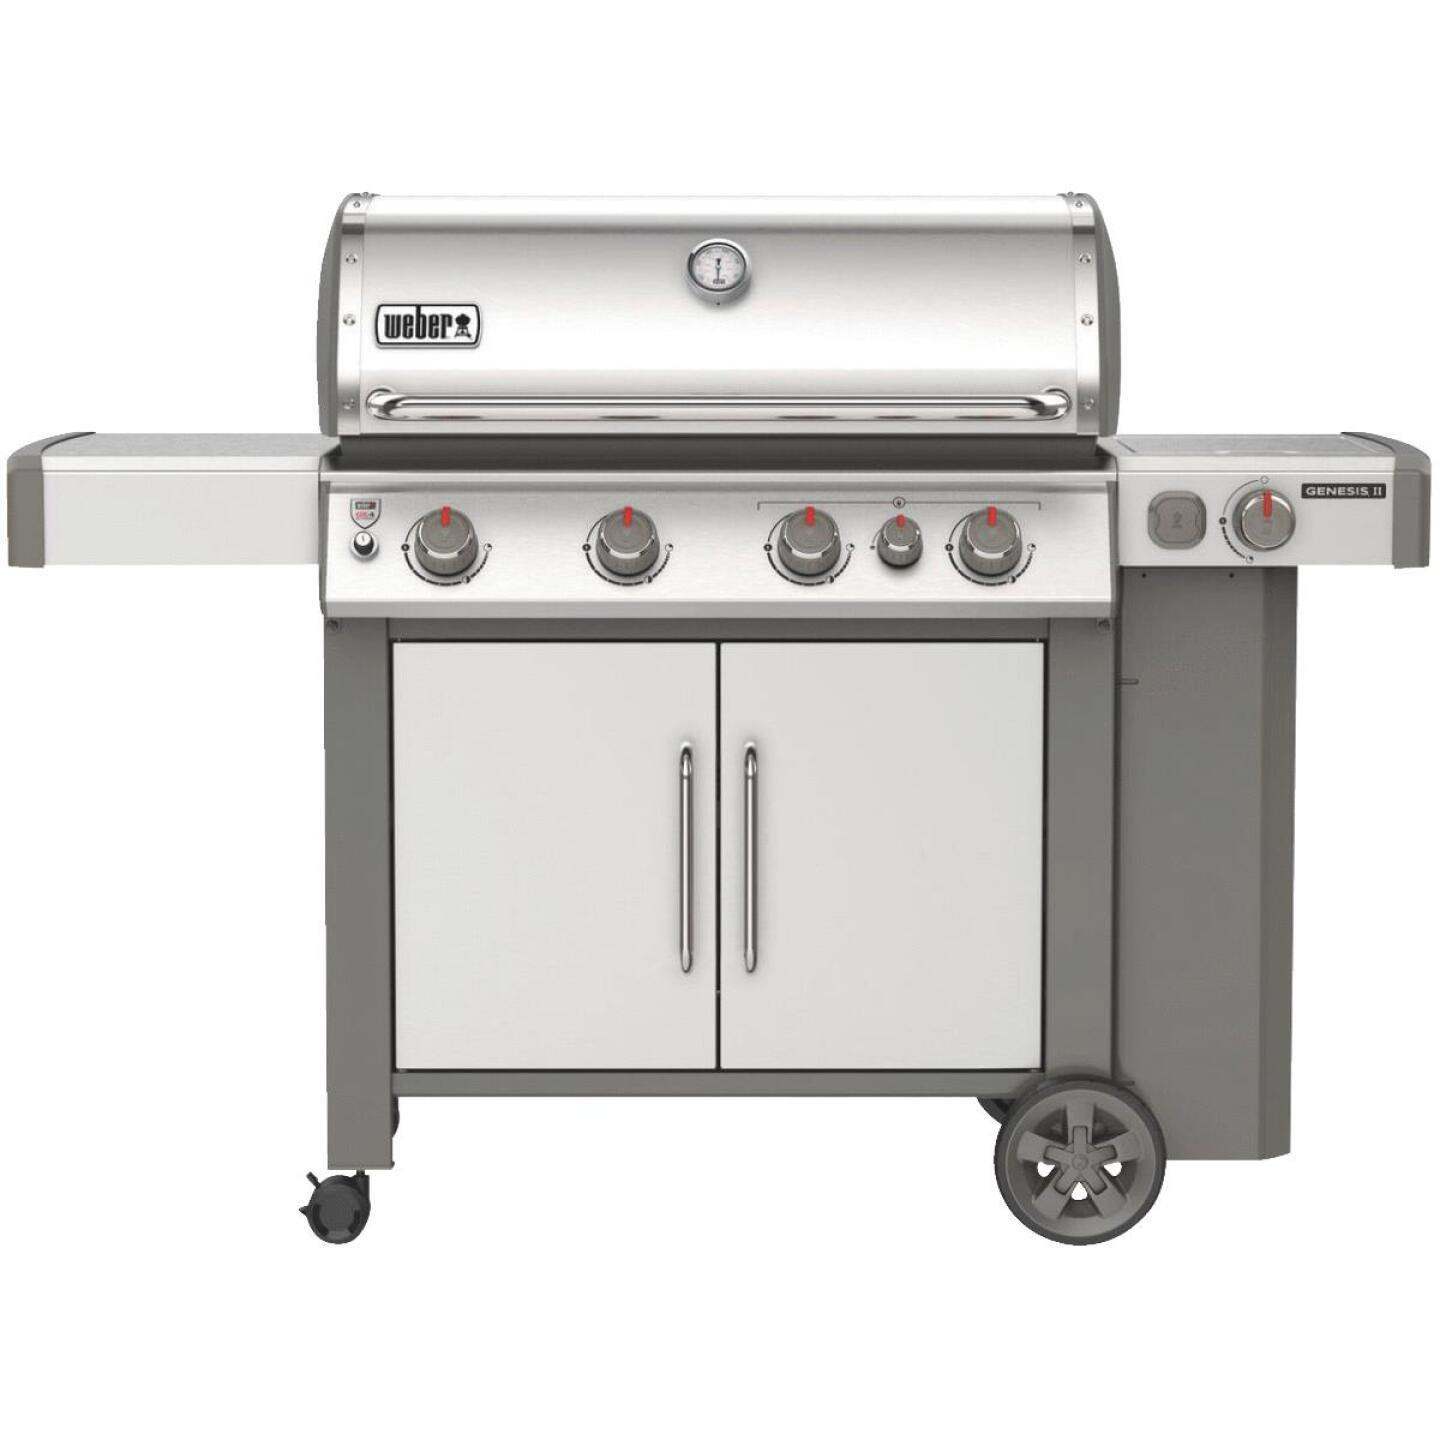 Weber Genesis II S-435 4-Burner Stainless Steel 48,000 BTU LP Gas Grill with 12,000 BTU Side -Burner Image 1